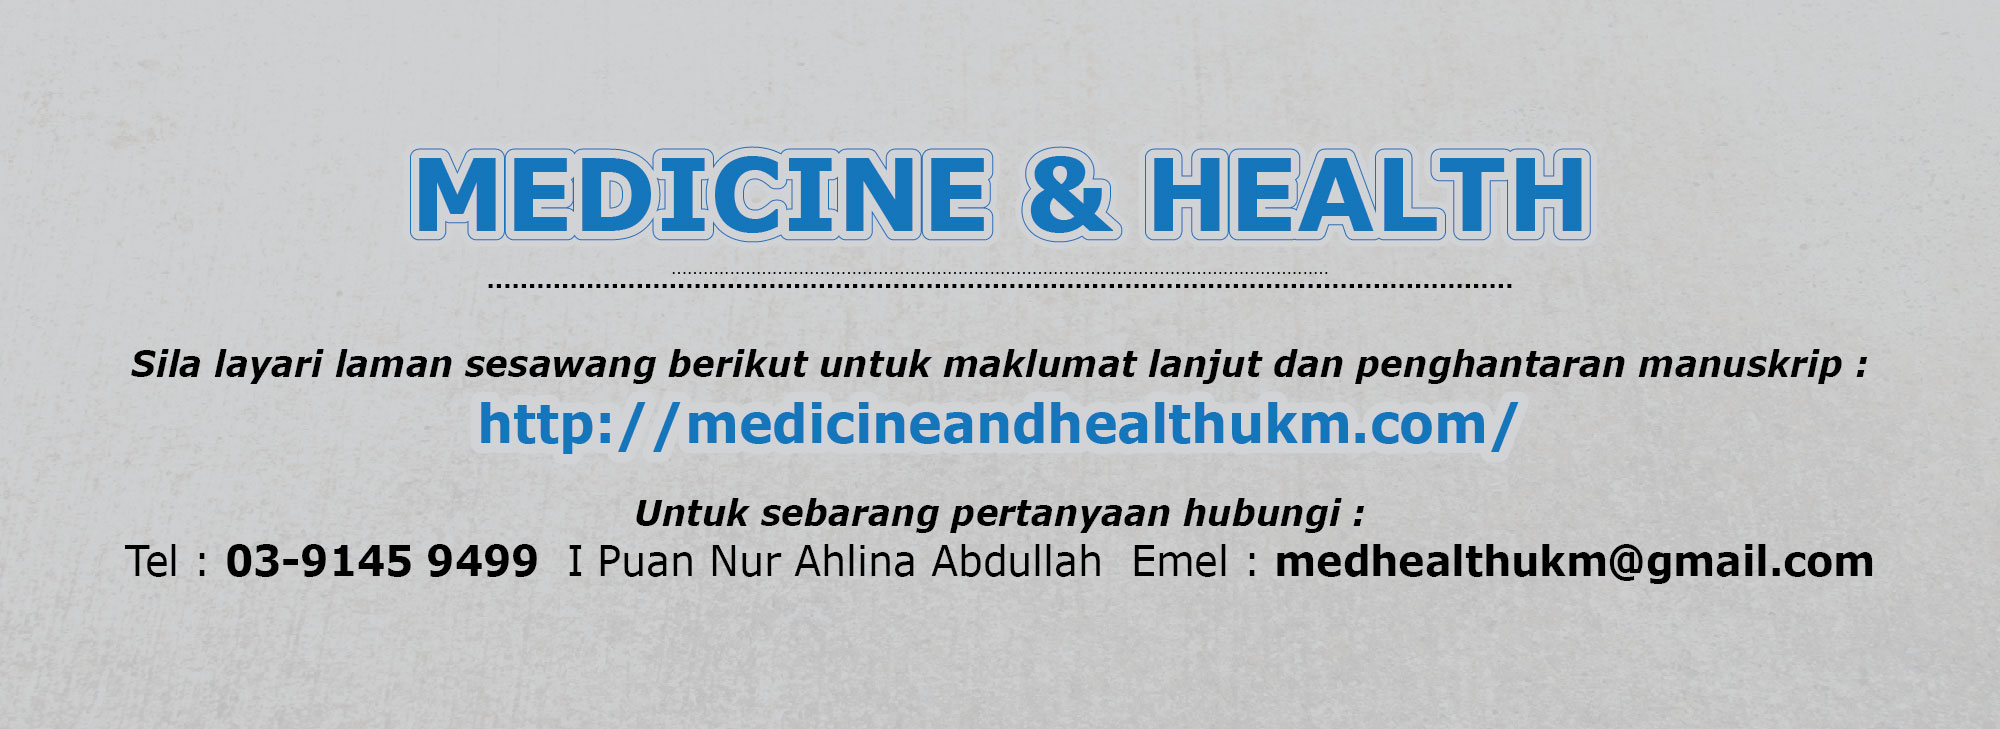 Medicine and Health 2016